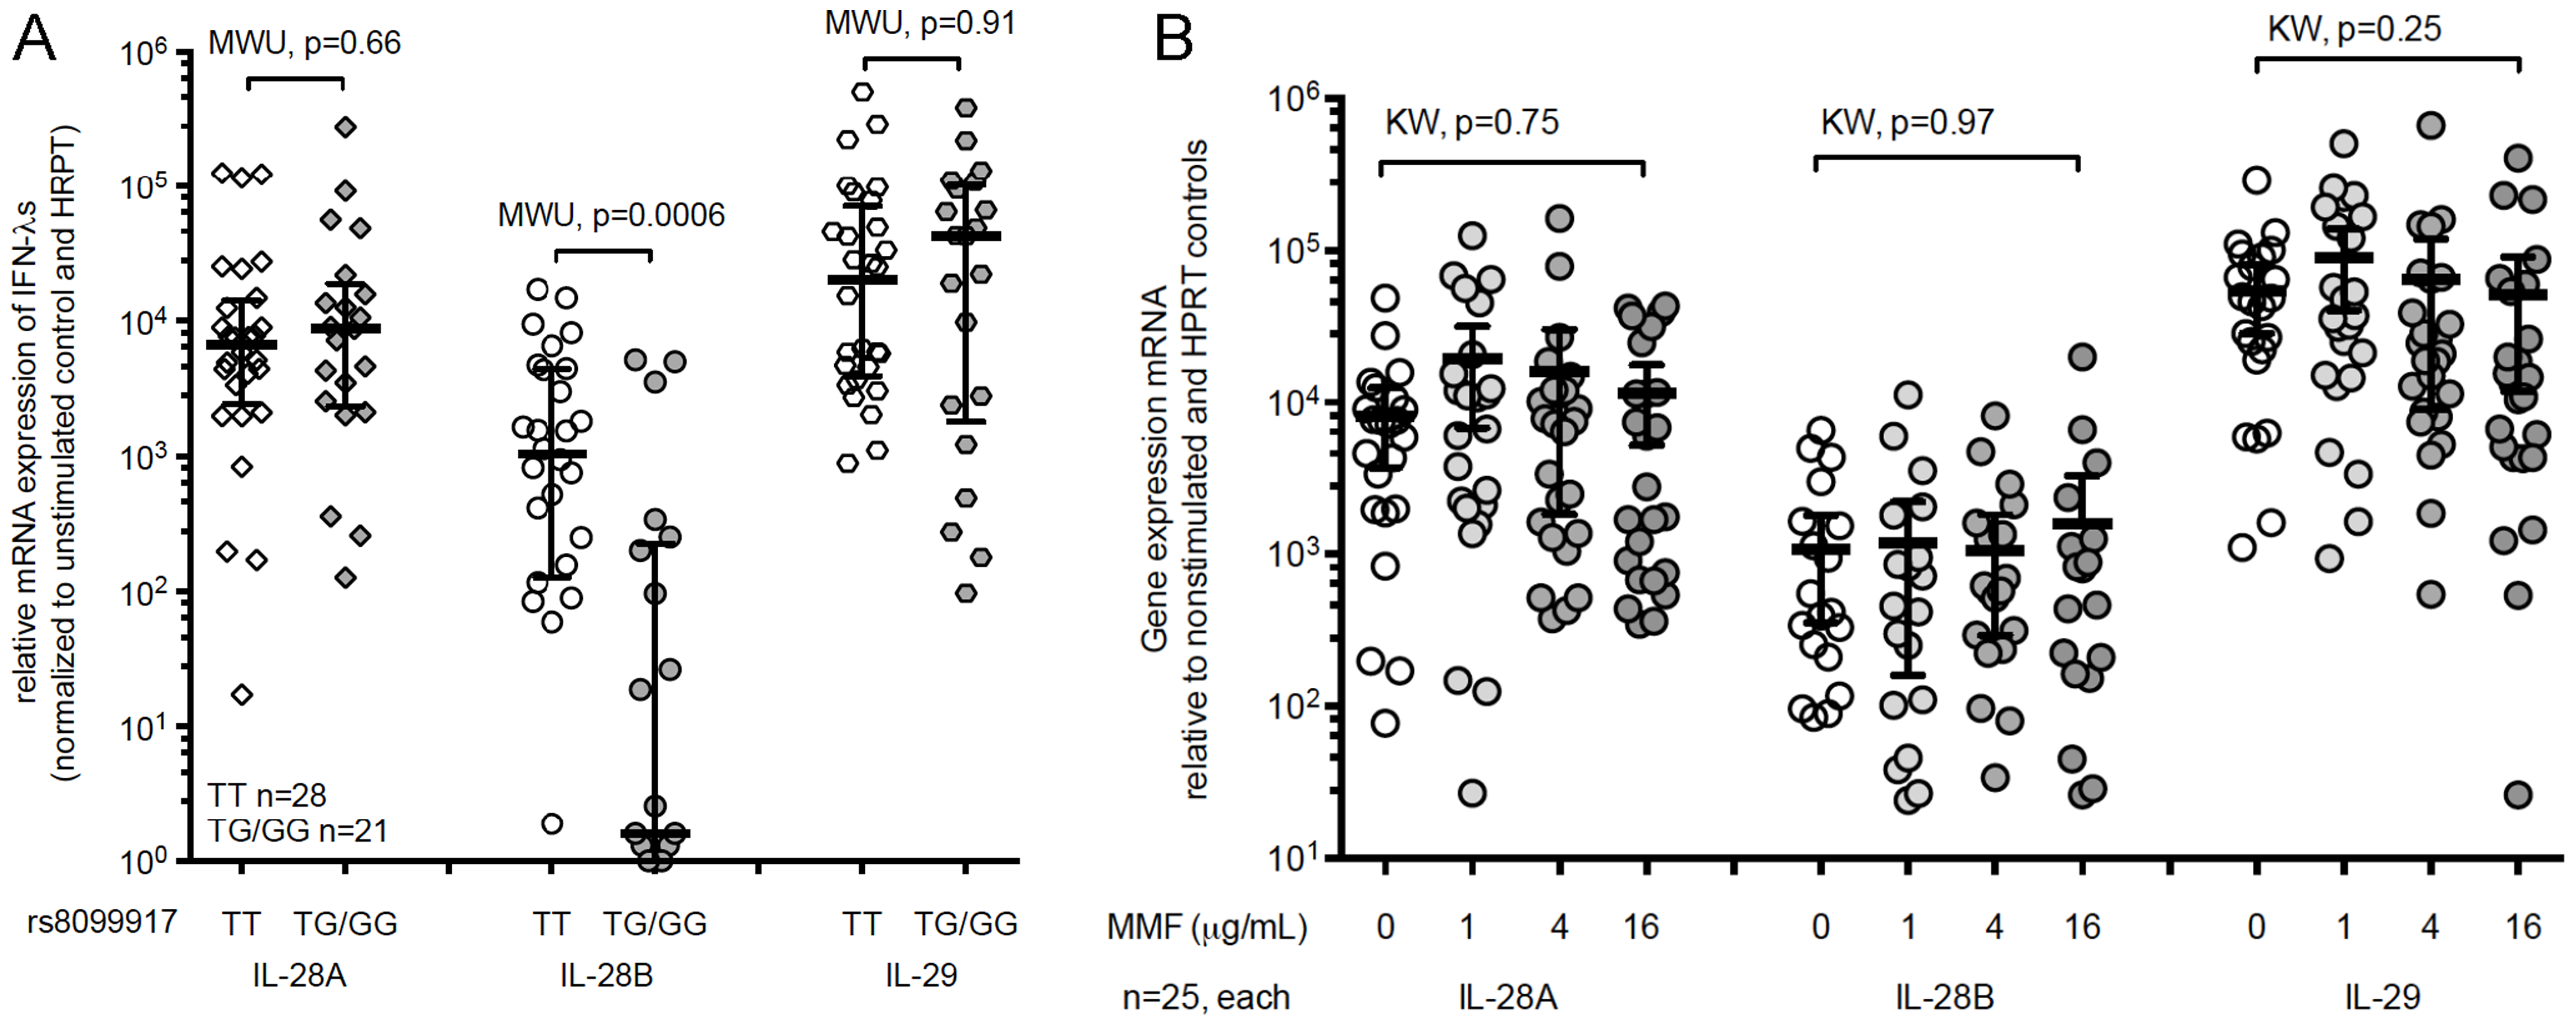 The minor-allele IL-28B genotype is associated with significantly lower expression of IL-28B, but not IL-29 or IL-28A mRNA in healthy volunteers.